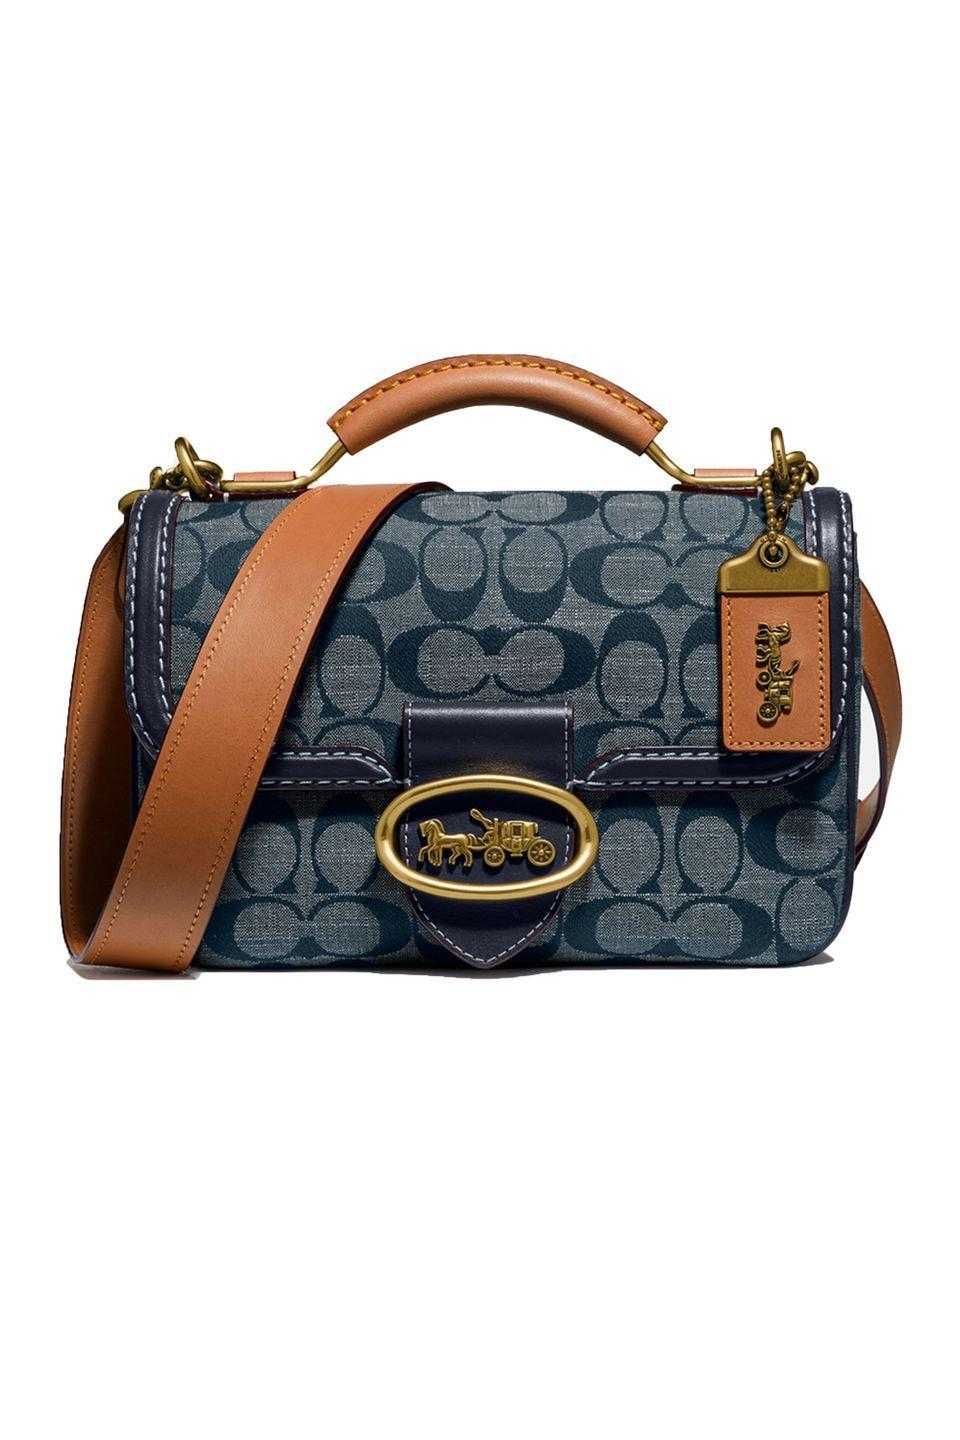 "<p>We always appreciate Coach's design nods to its <a href=""https://www.elle.com/fashion/shopping/g31251265/coach-originals-archive-bags/"" rel=""nofollow noopener"" target=""_blank"" data-ylk=""slk:past"" class=""link rapid-noclick-resp"">past</a>. The brand balances heritage silhouettes with modern needs—like expandable interiors and a detachable shoulder strap. This denim chambray is a fabric you won't be <em>too</em> precious about wearing on the daily. </p><p><em>Coach Riley Satchel, $595; coach.com</em></p><p><a class=""link rapid-noclick-resp"" href=""https://go.redirectingat.com?id=74968X1596630&url=https%3A%2F%2Fwww.coach.com%2Fcoach-riley-top-handle-22-in-signature-chambray%2F3630.html%3Fdwvar_color%3DB4RA3%26cgid%3Dwomen&sref=https%3A%2F%2Fwww.elle.com%2Ffashion%2Fshopping%2Fg33416567%2Fdesigner-it-bags-pre-fall-2021%2F"" rel=""nofollow noopener"" target=""_blank"" data-ylk=""slk:SHOP NOW"">SHOP NOW</a></p>"